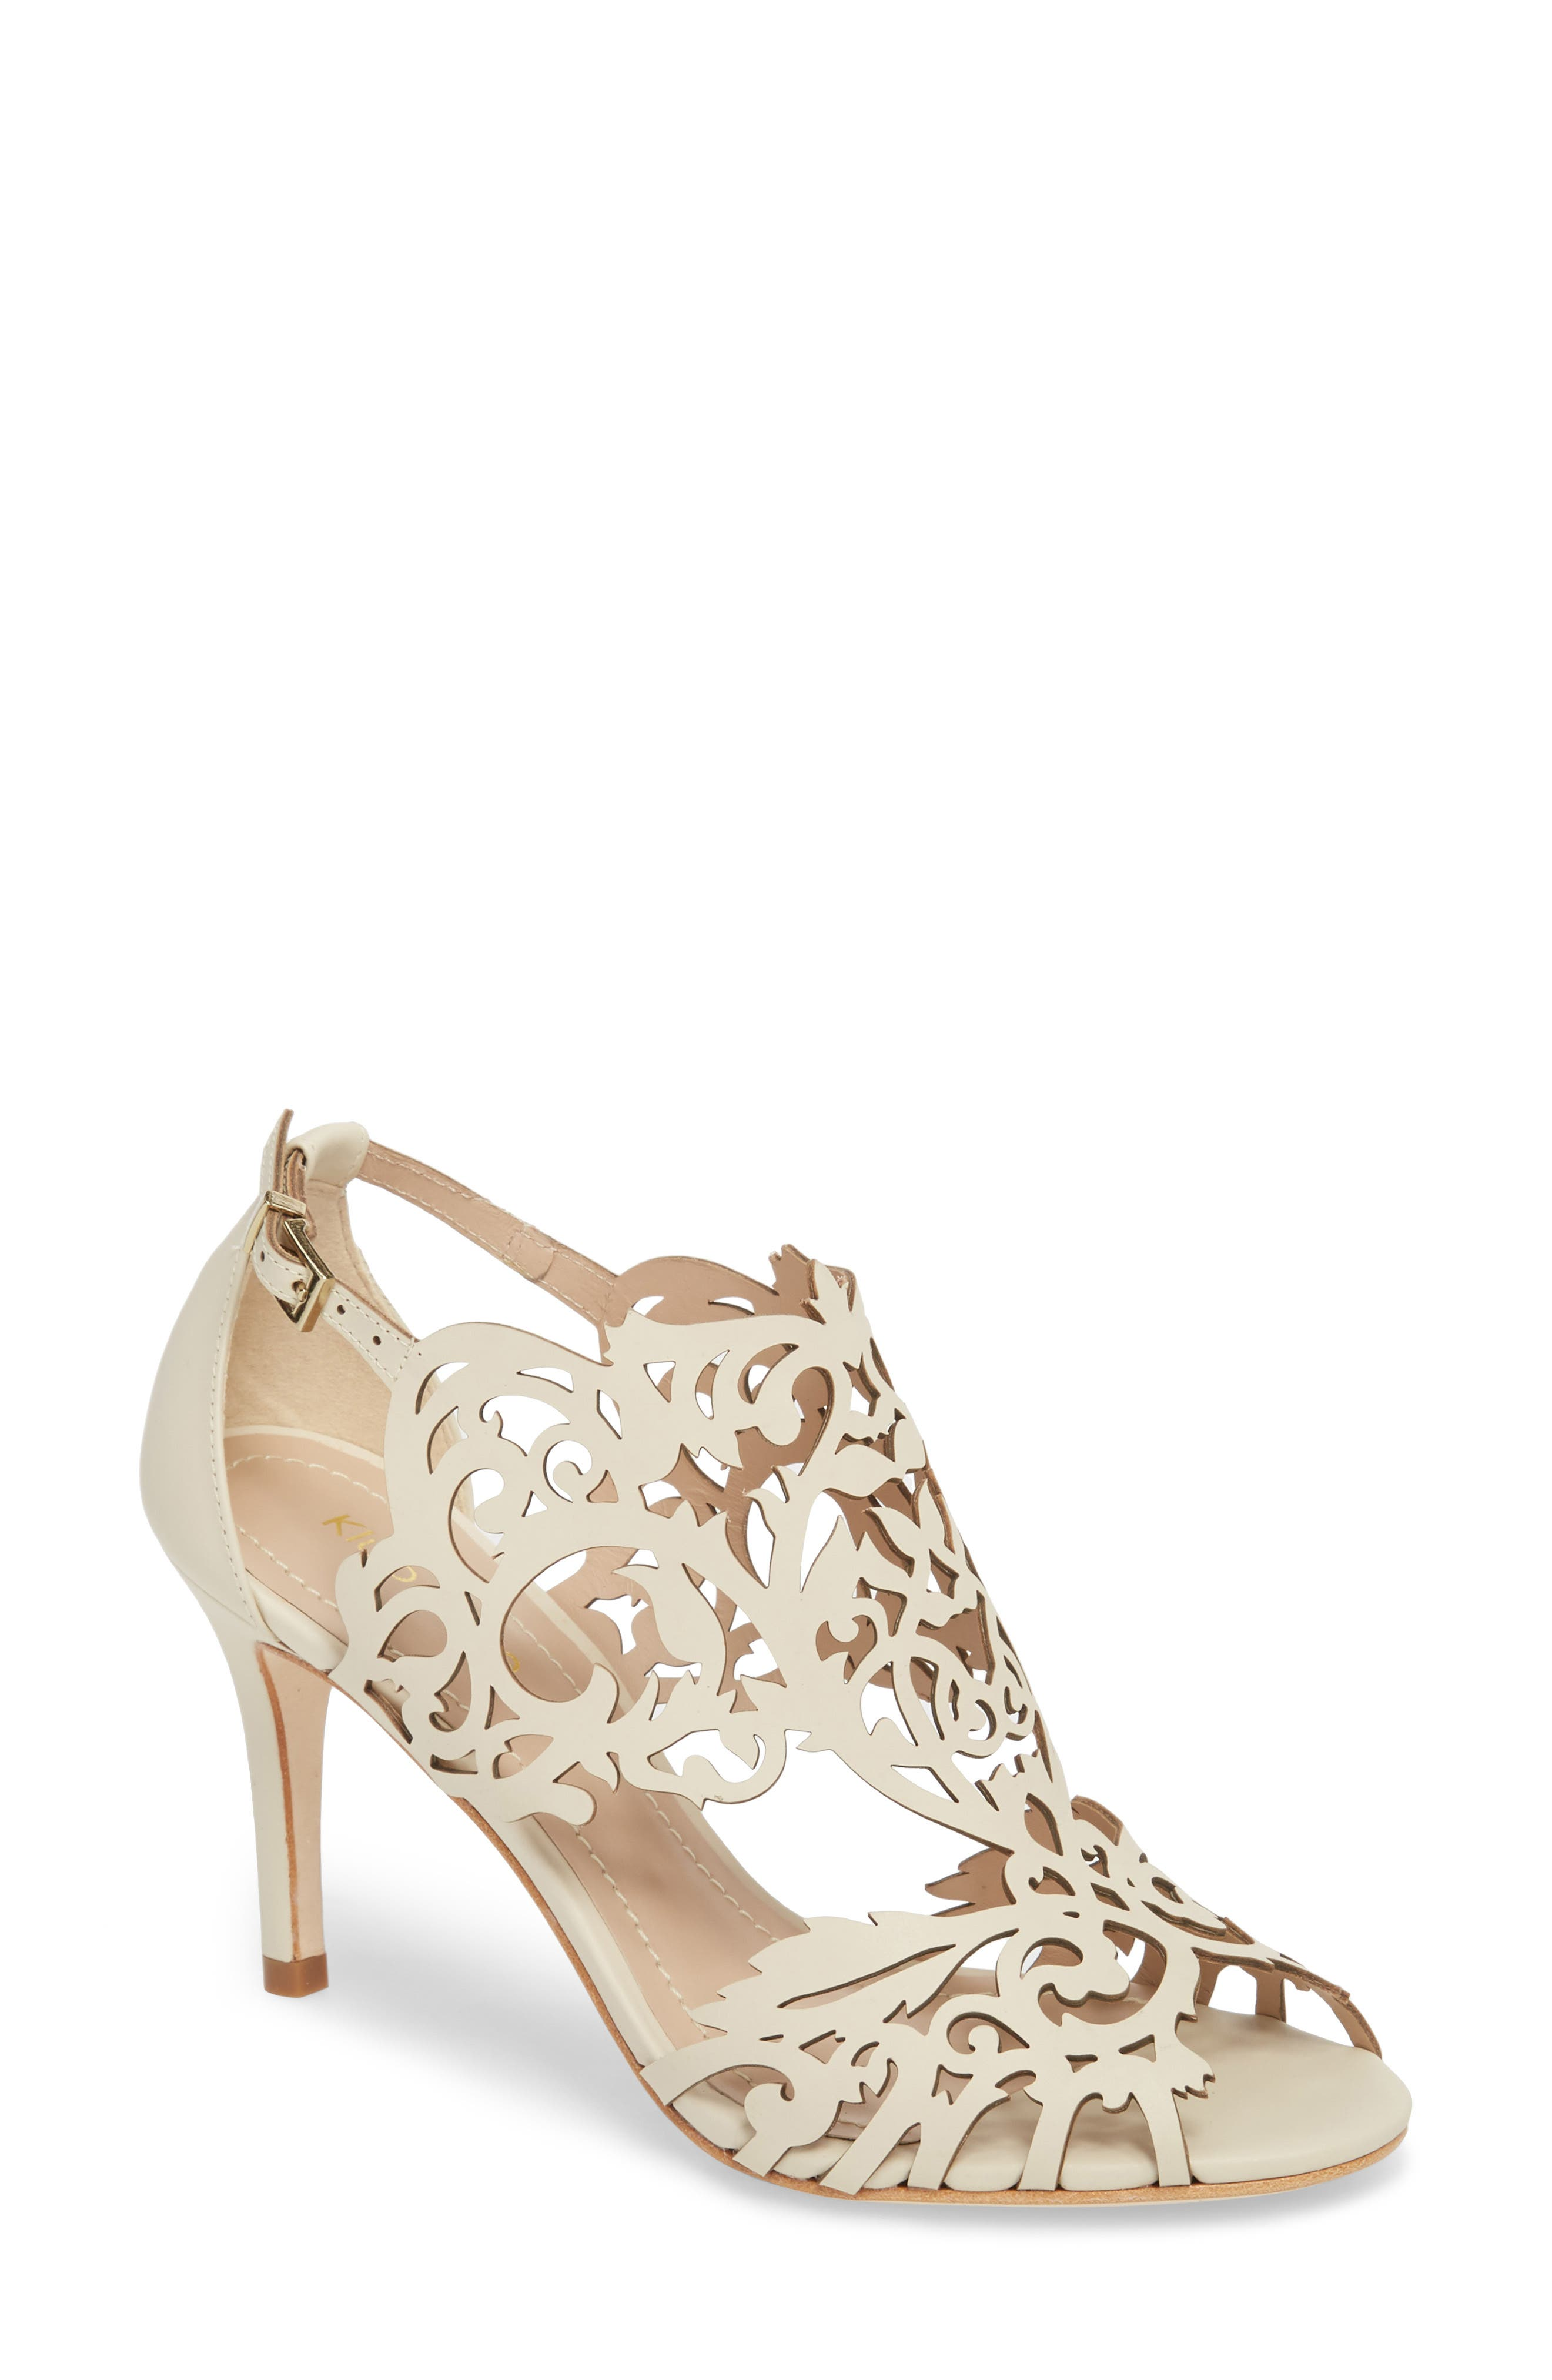 Marcela 3 Laser Cutout Sandal,                             Main thumbnail 1, color,                             Ivory Leather